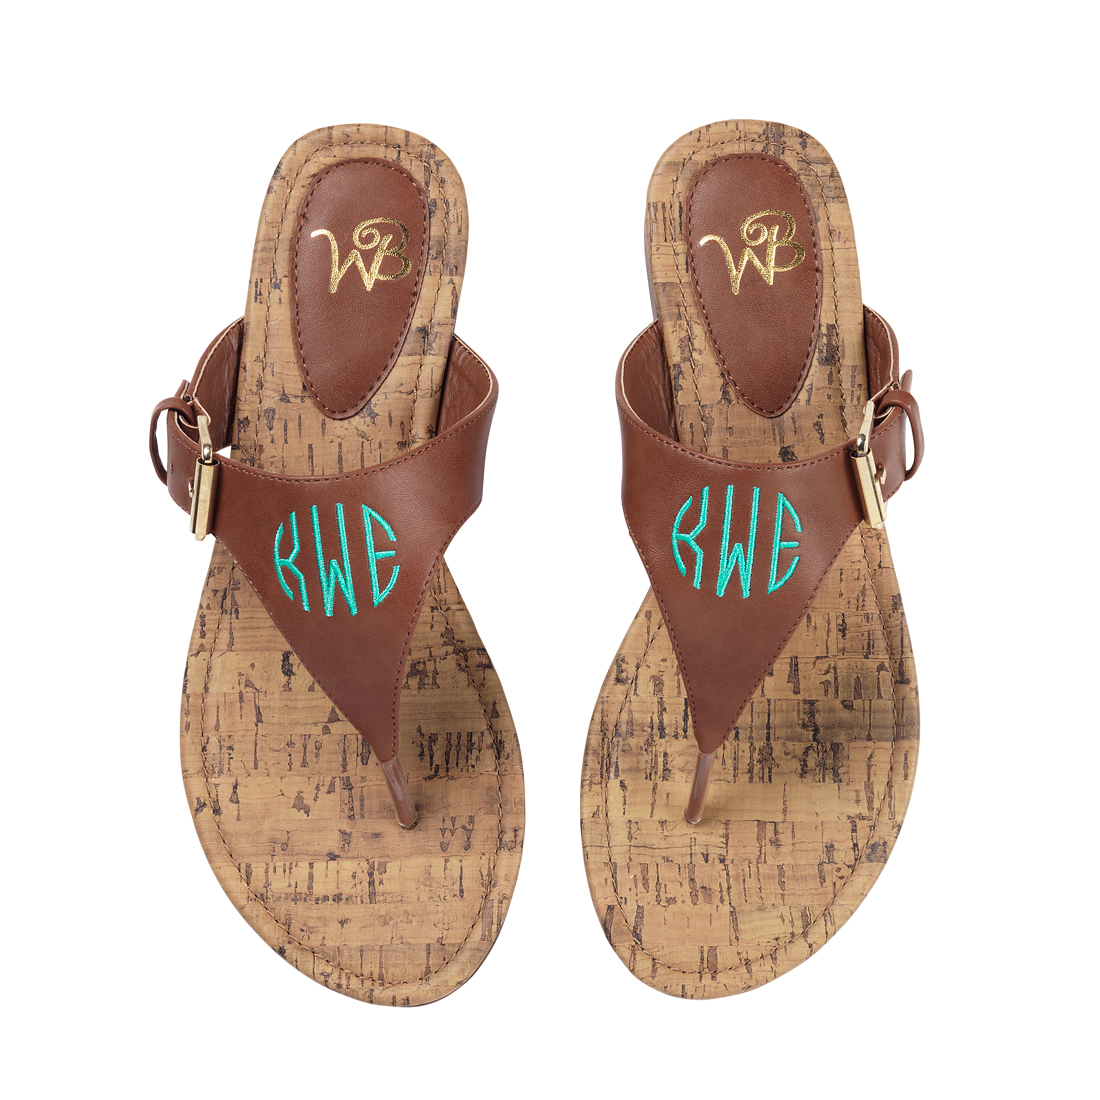 07d8dd020 Monogrammed Sandals - Brown